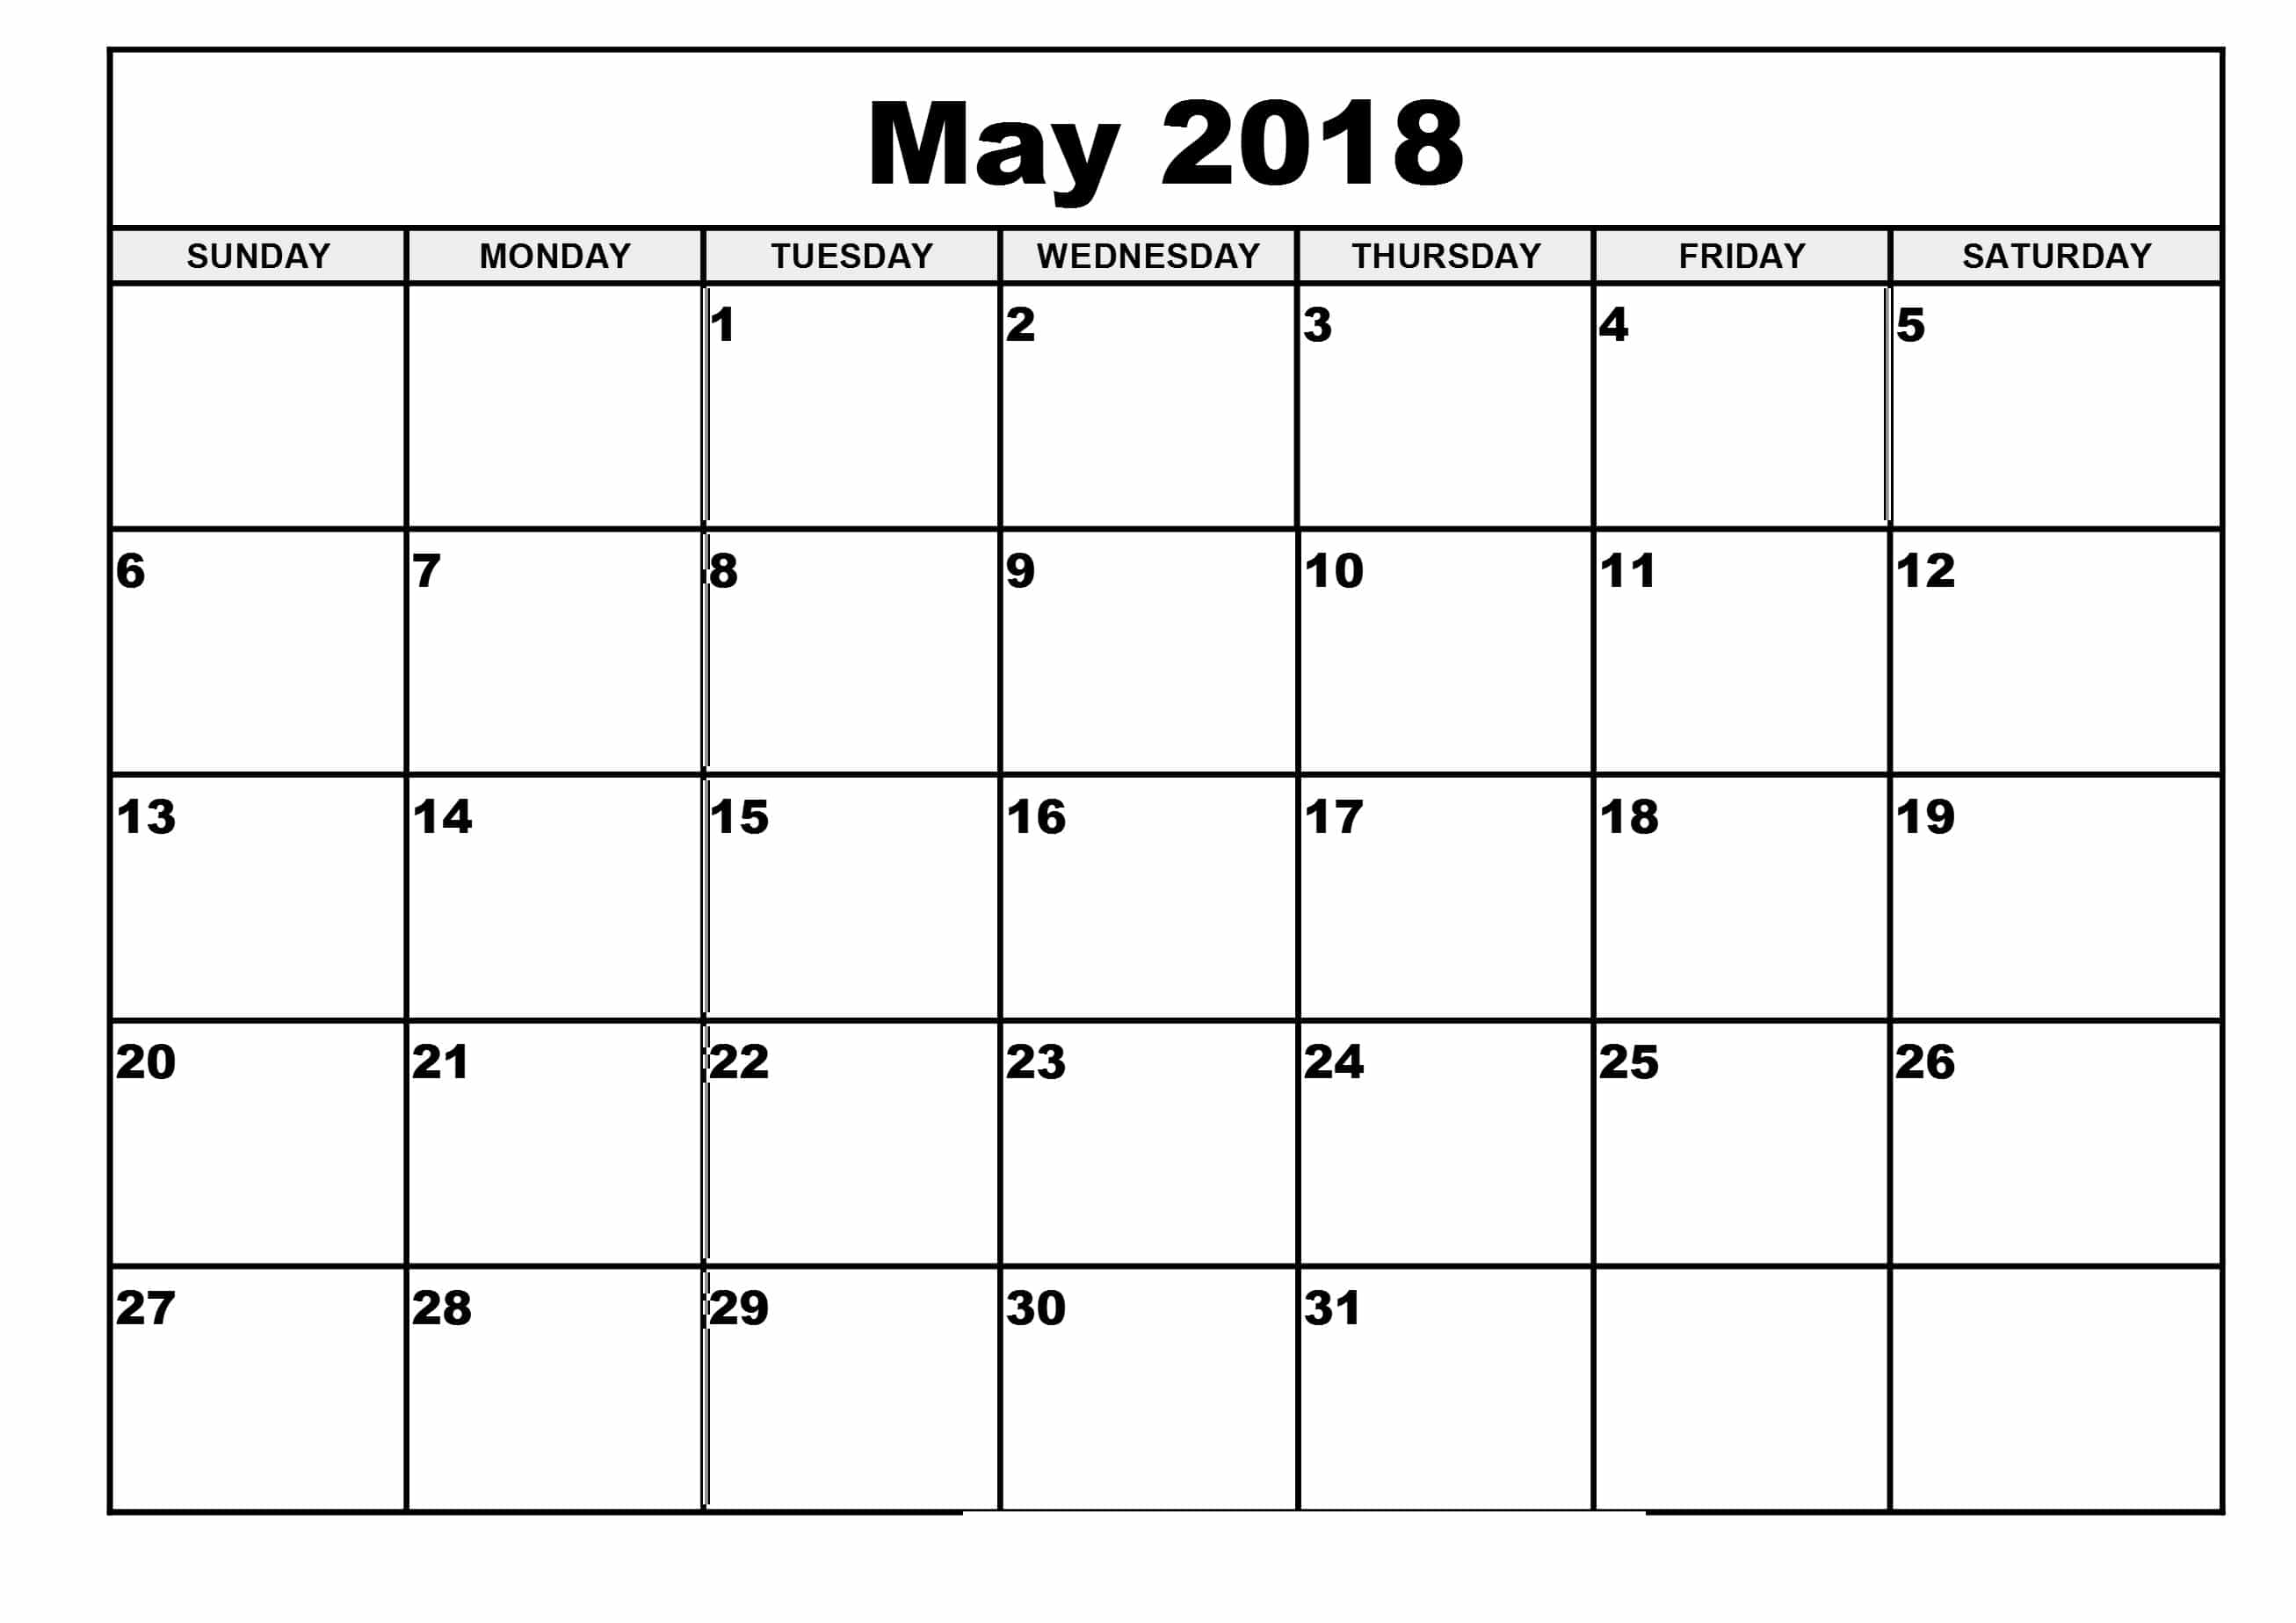 May 2018 Calendar Printable Waterproof - Free HD Images